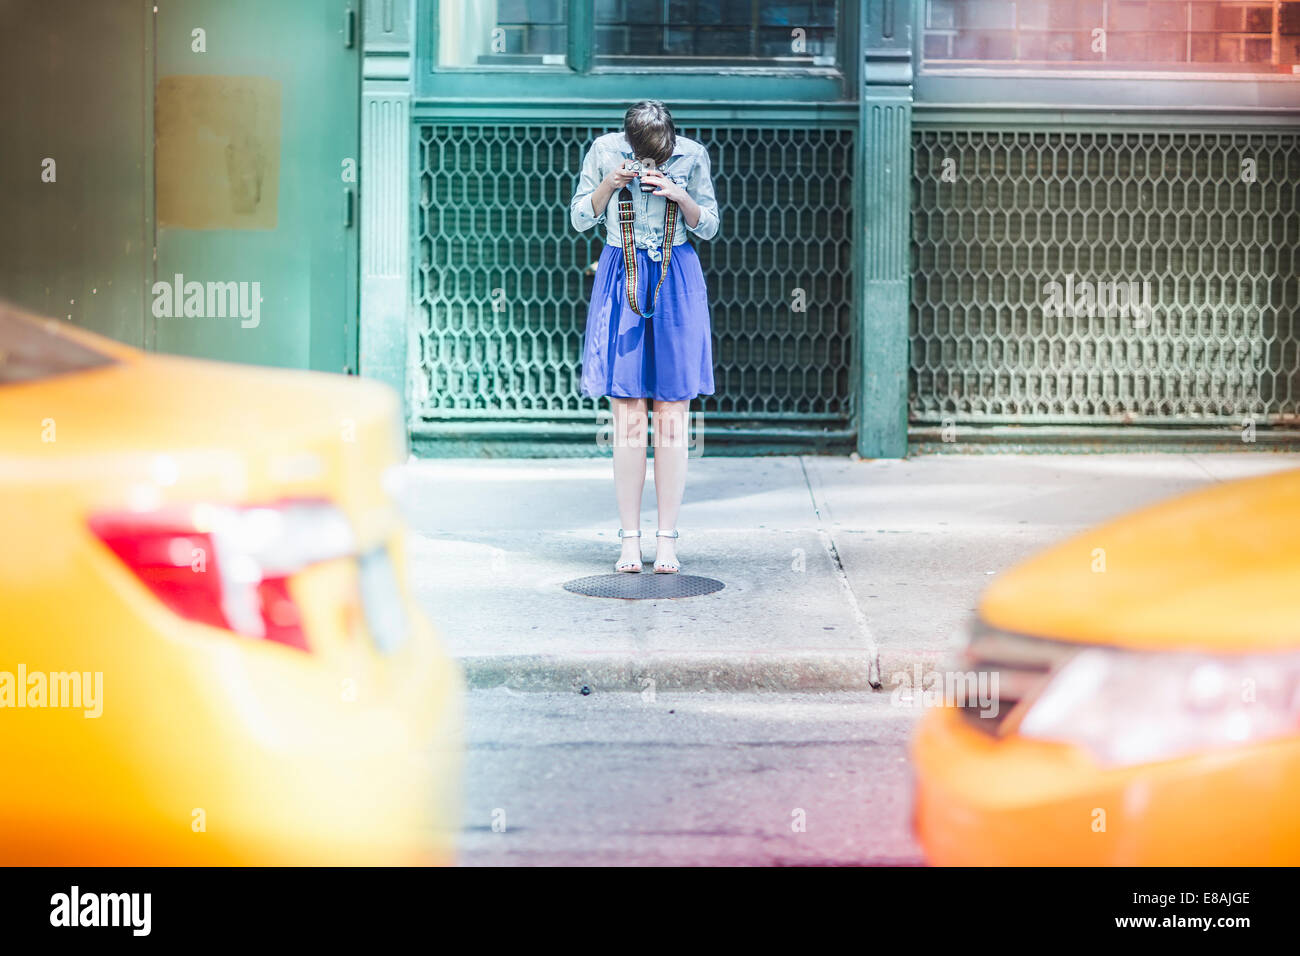 Woman photographing on street, New York, US - Stock Image